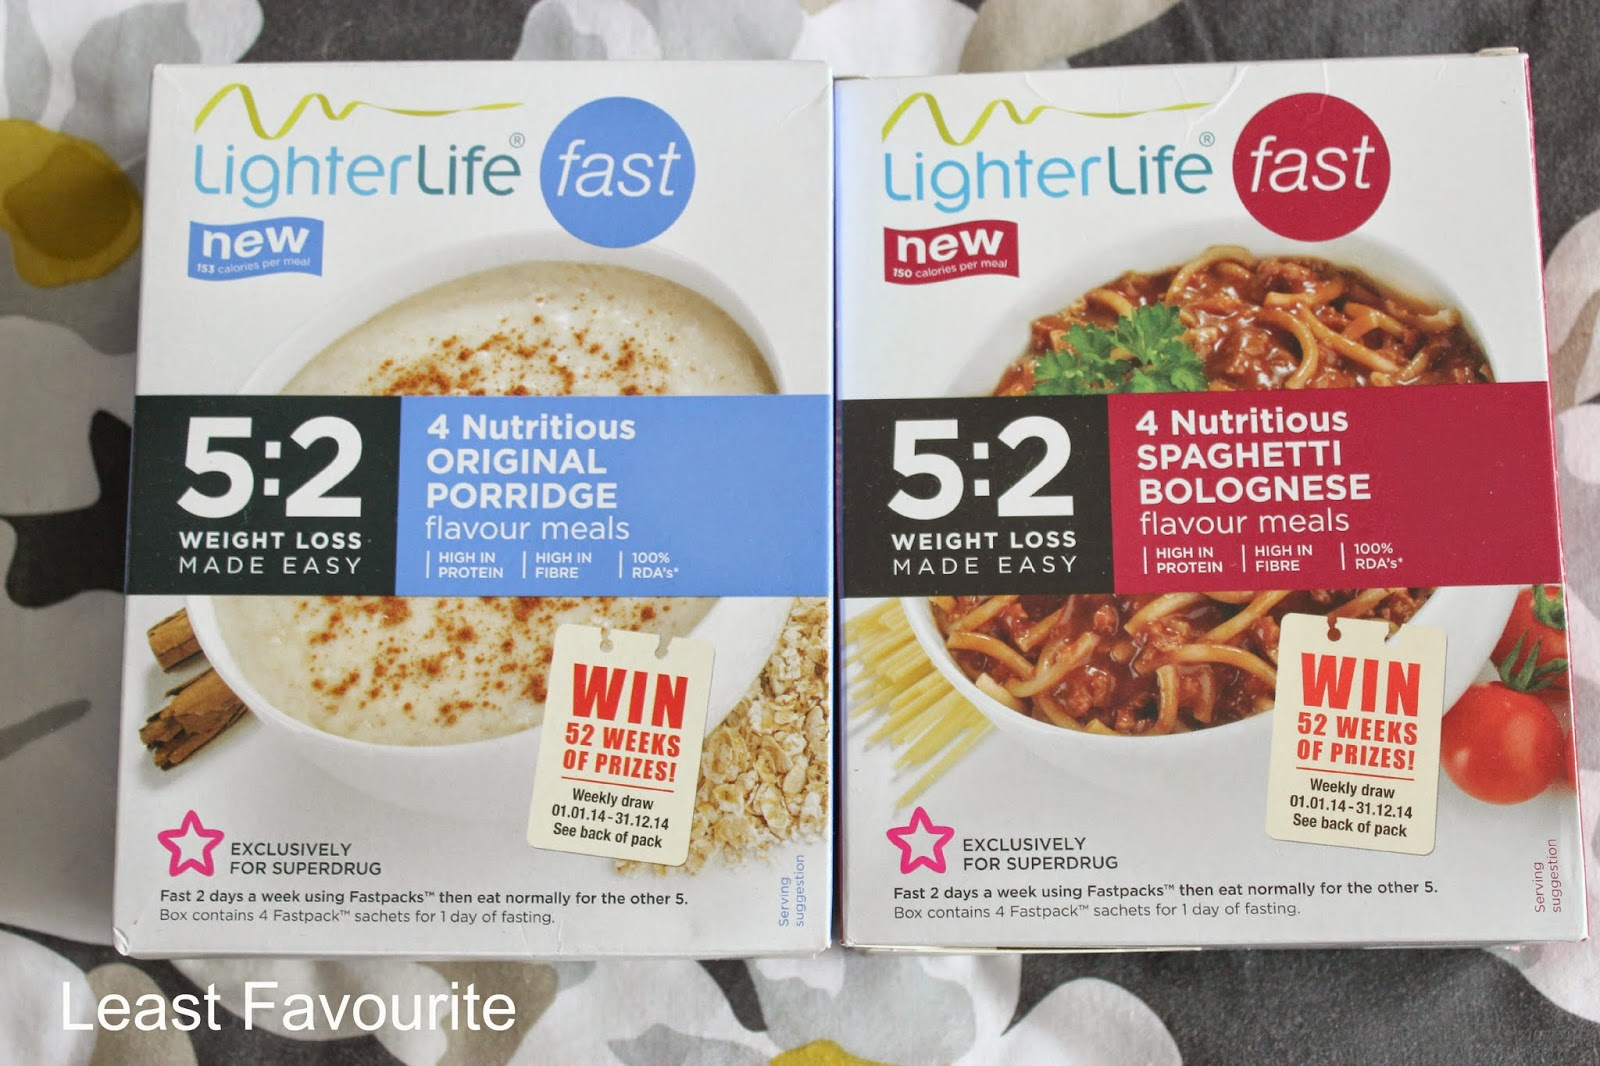 Picture of LighterLife FAST meals